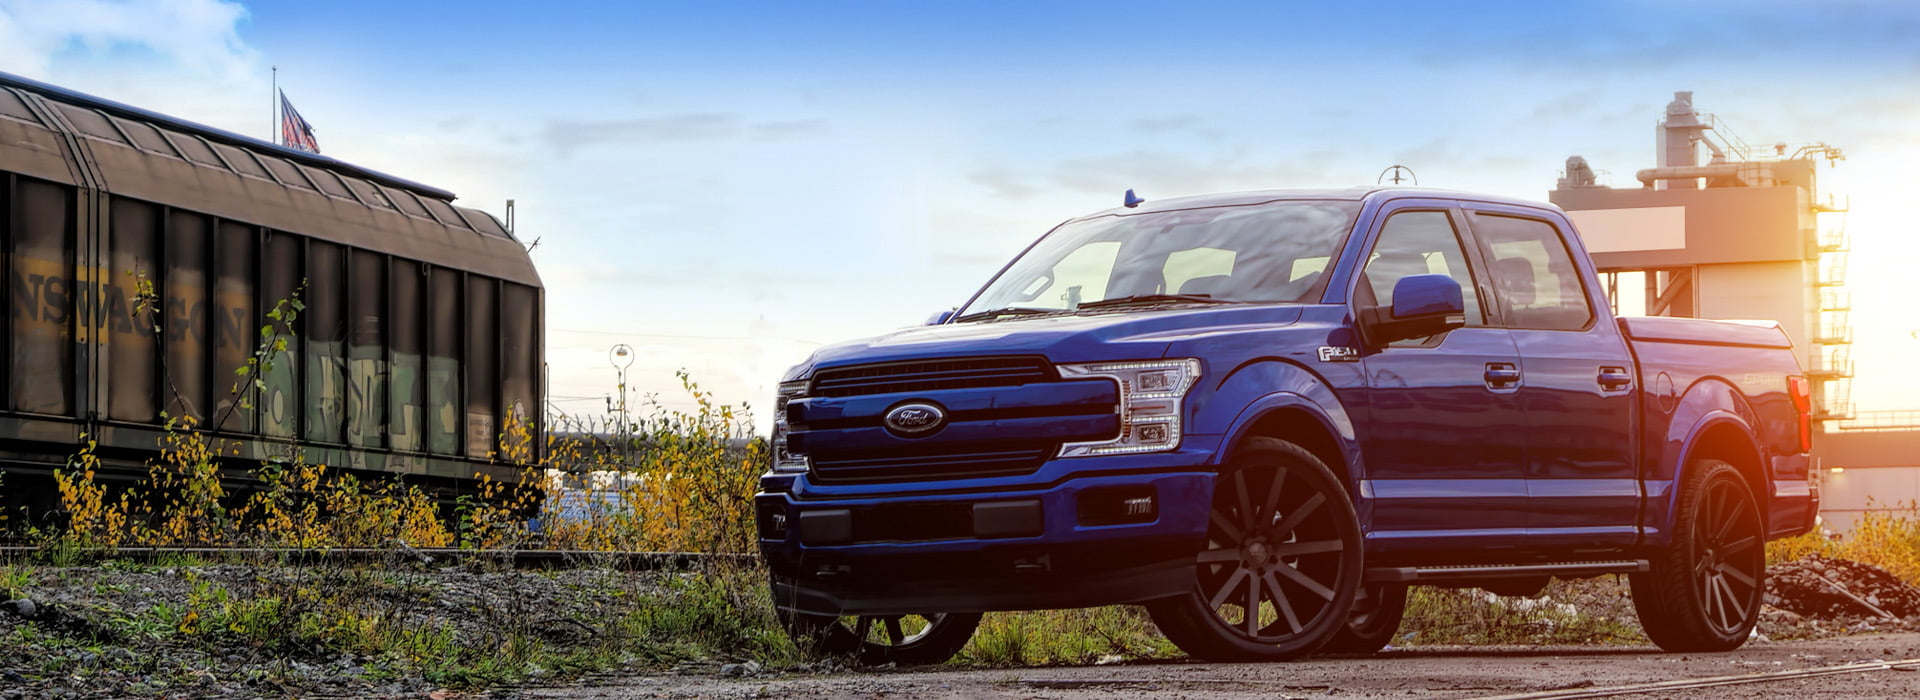 Ford F-150 Street styling